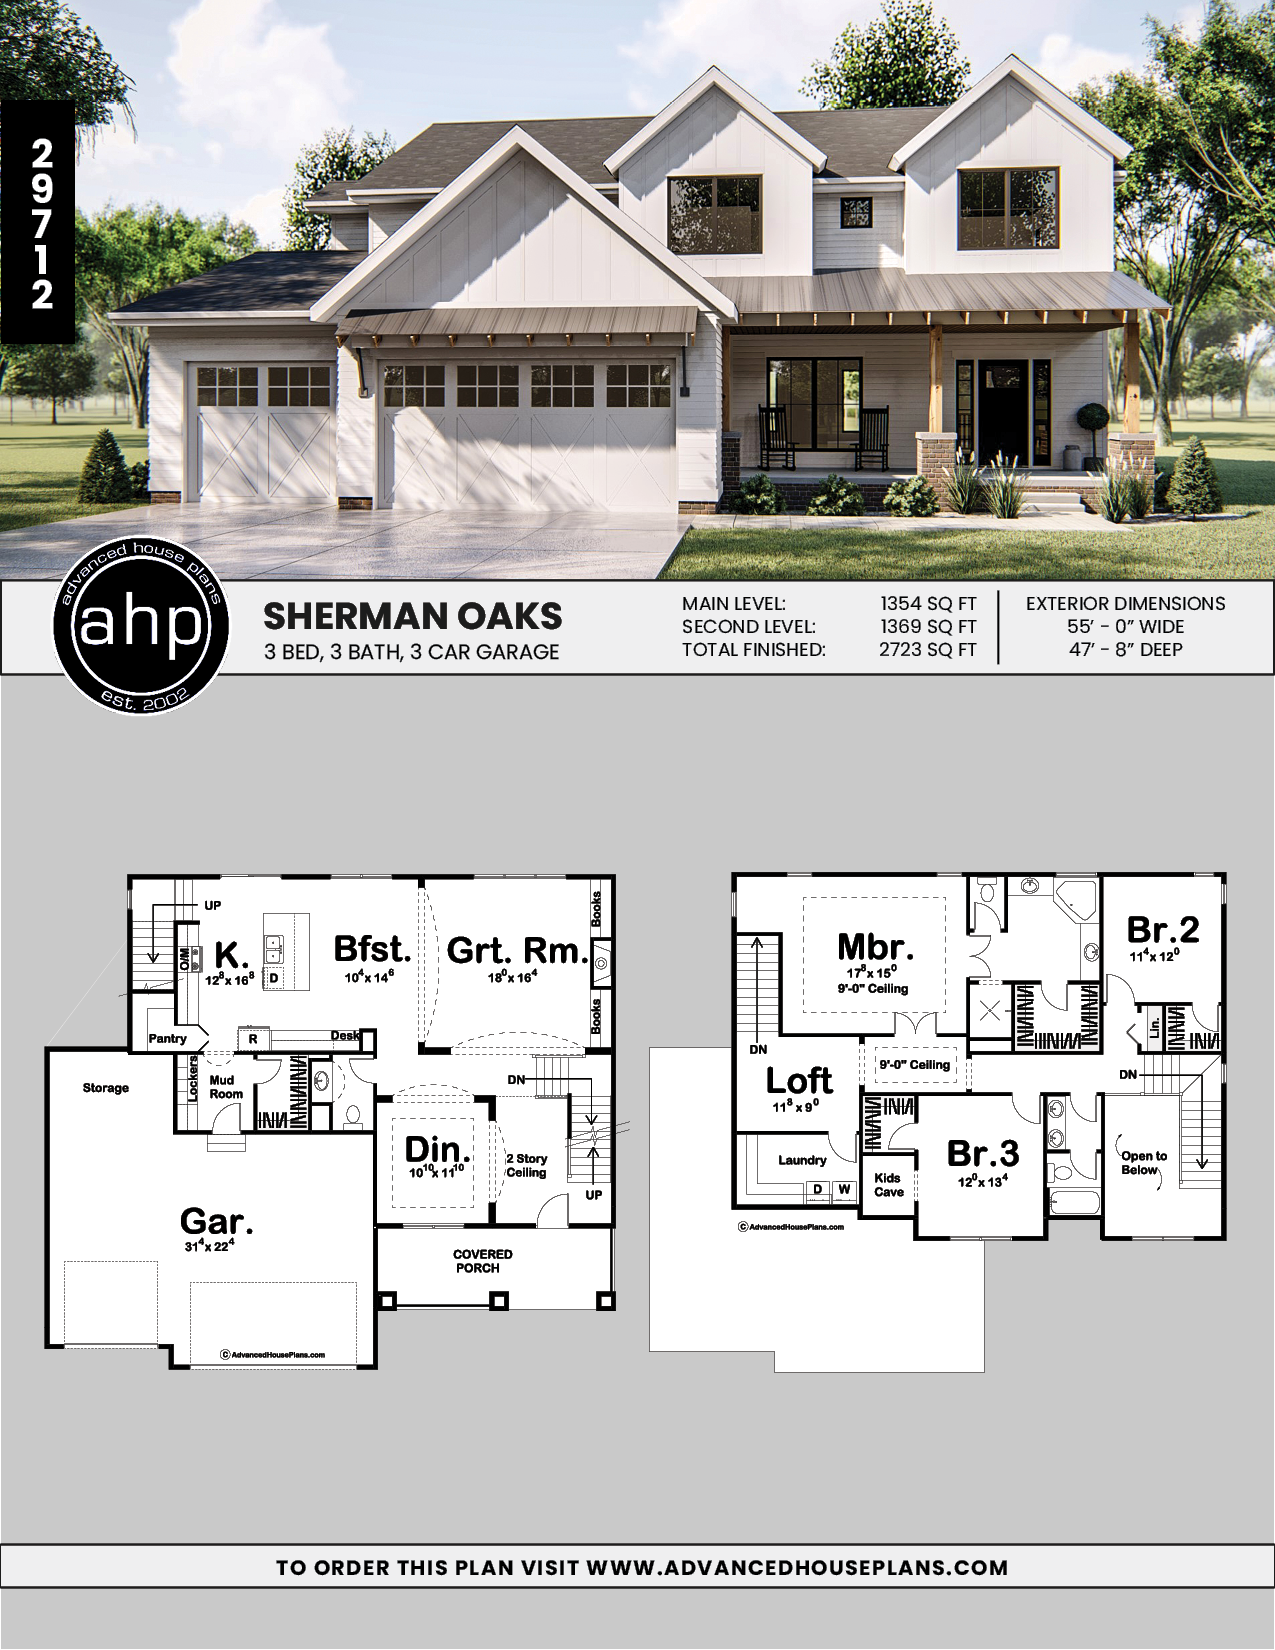 2 Story Modern Farmhouse House Plan Sherman Oaks House Plans Farmhouse House Plans 2 Story Farmhouse House